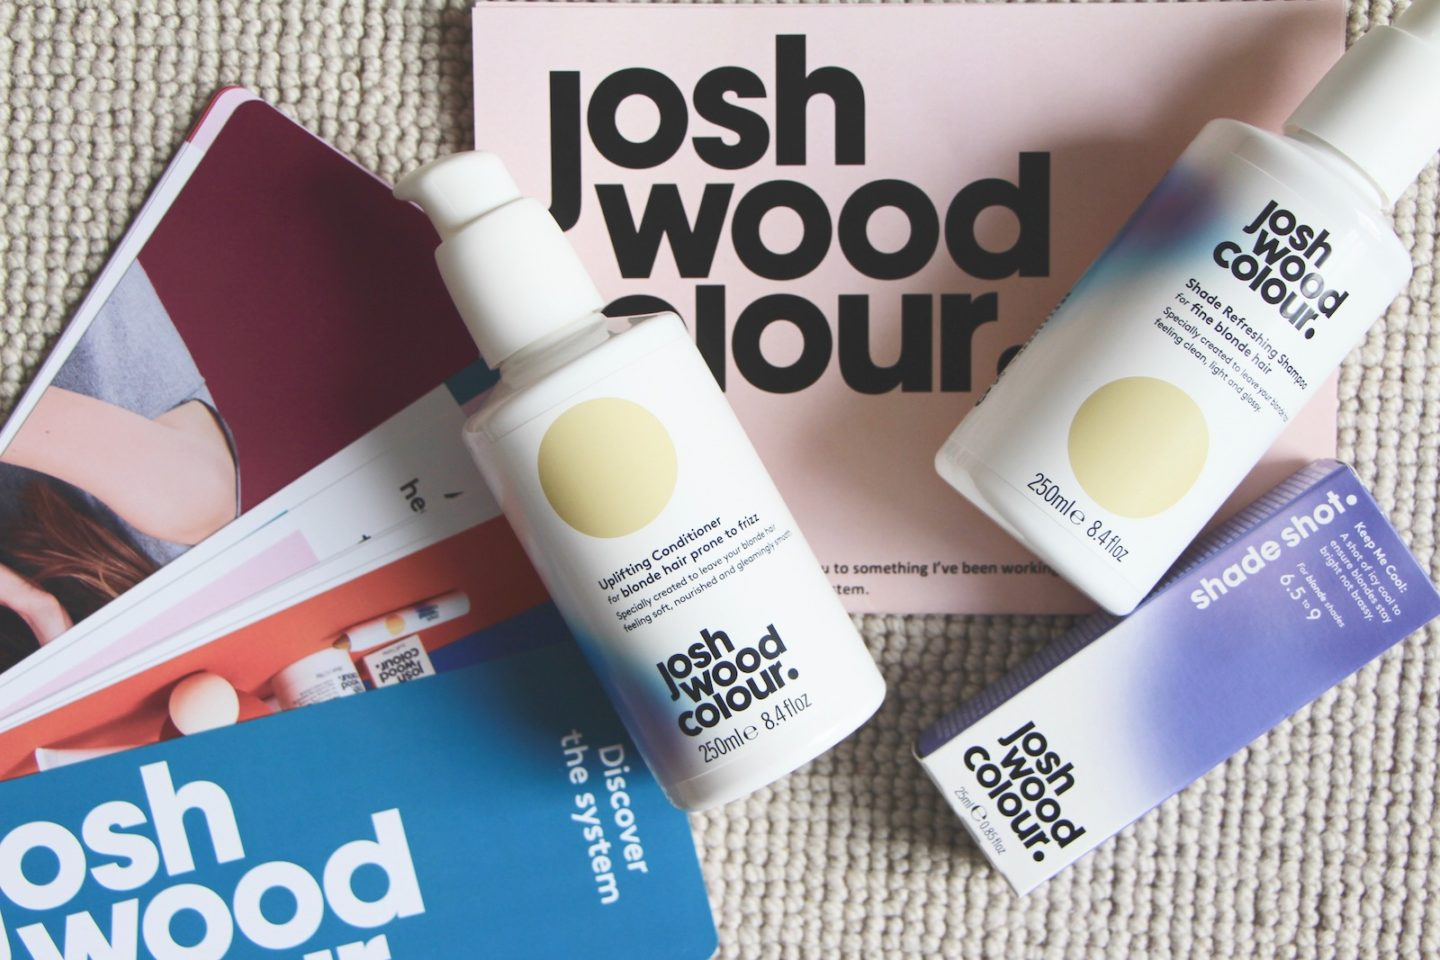 Josh Wood Colour: The Ultimate Hair Colour System